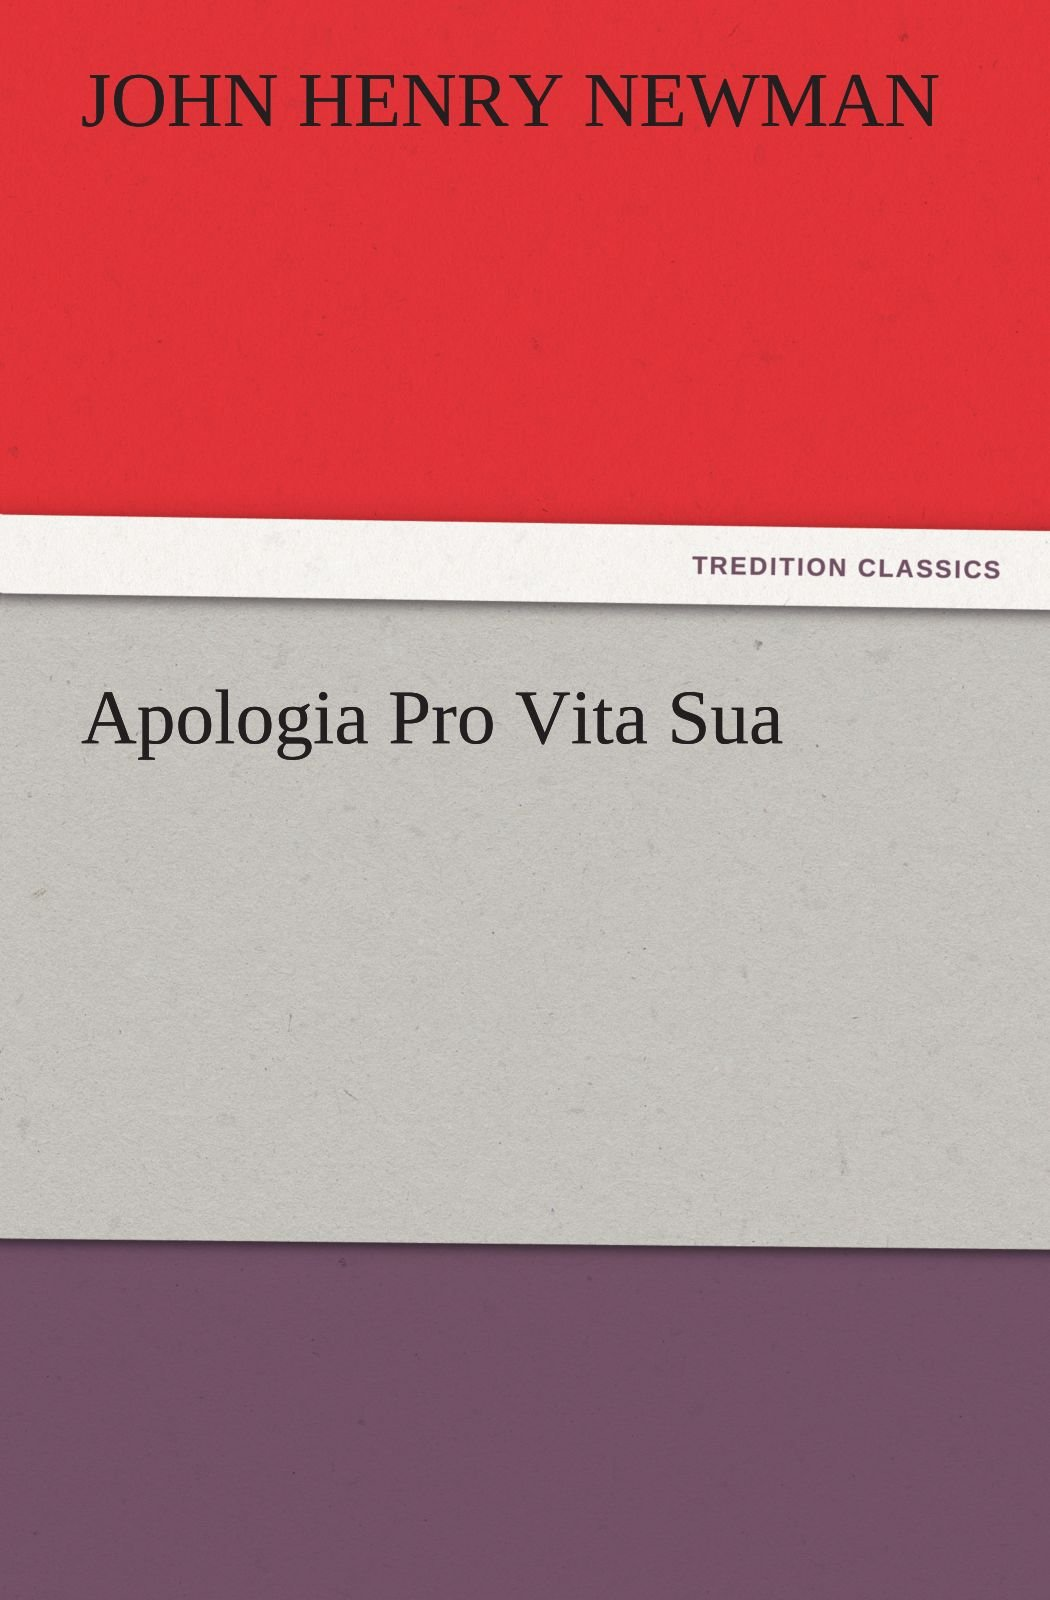 Read Online Apologia Pro Vita Sua (TREDITION CLASSICS) ebook